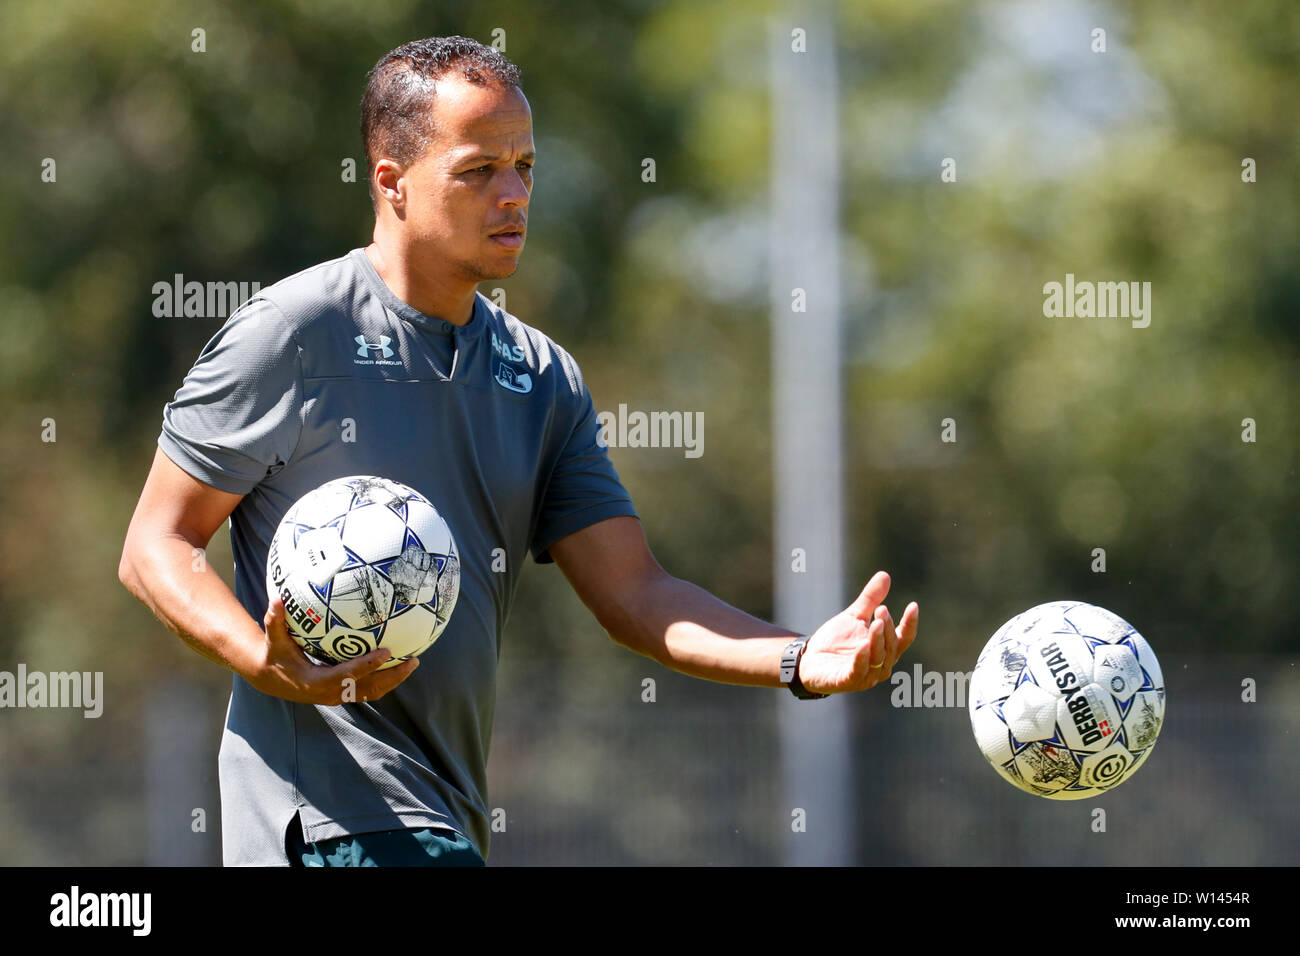 Dirkshorn, Netherlands. 29th June, 2019. DIRKSHOORN, 29-06-2019, Sportcomplex De Veersloot, Dutch football, Eredivisie, season 2019/2020. Kitman Melvin Reemnet during the pre season practice match AZ vs Oleksandria Credit: Pro Shots/Alamy Live News - Stock Image